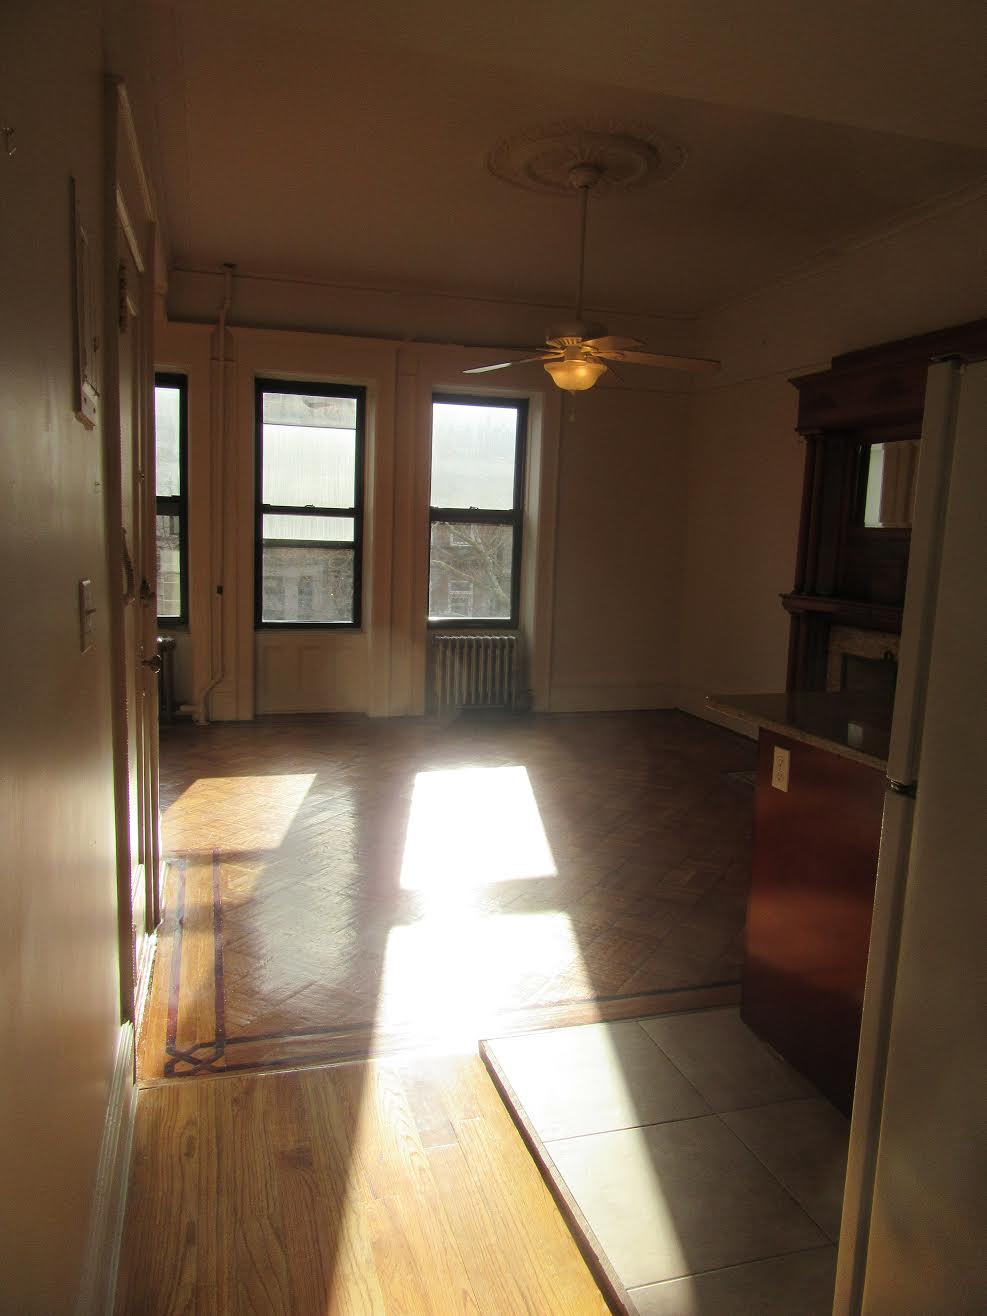 $2850 - 1.5 BR, Prospect Heights (Sterling Place) — Suzanne ...